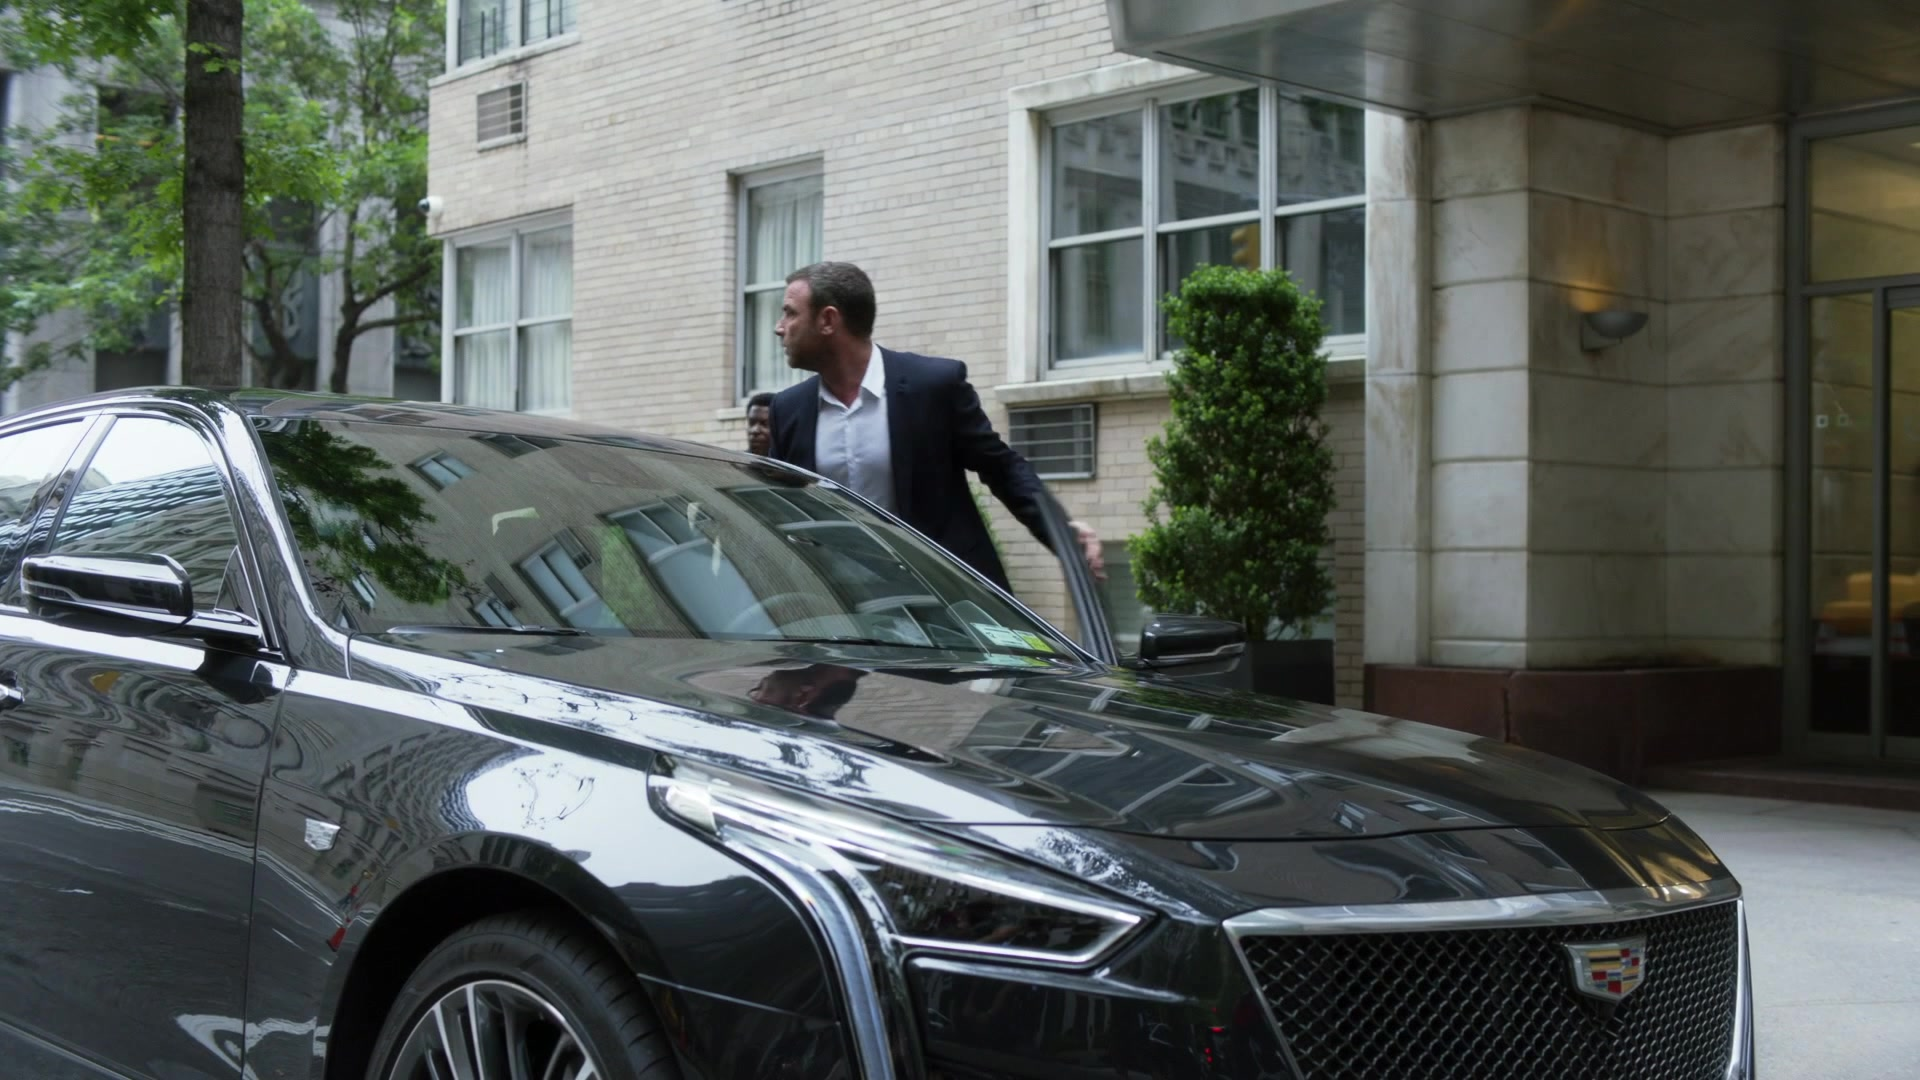 Cadillac Ct6 Car Used By Liev Schreiber In Ray Donovan